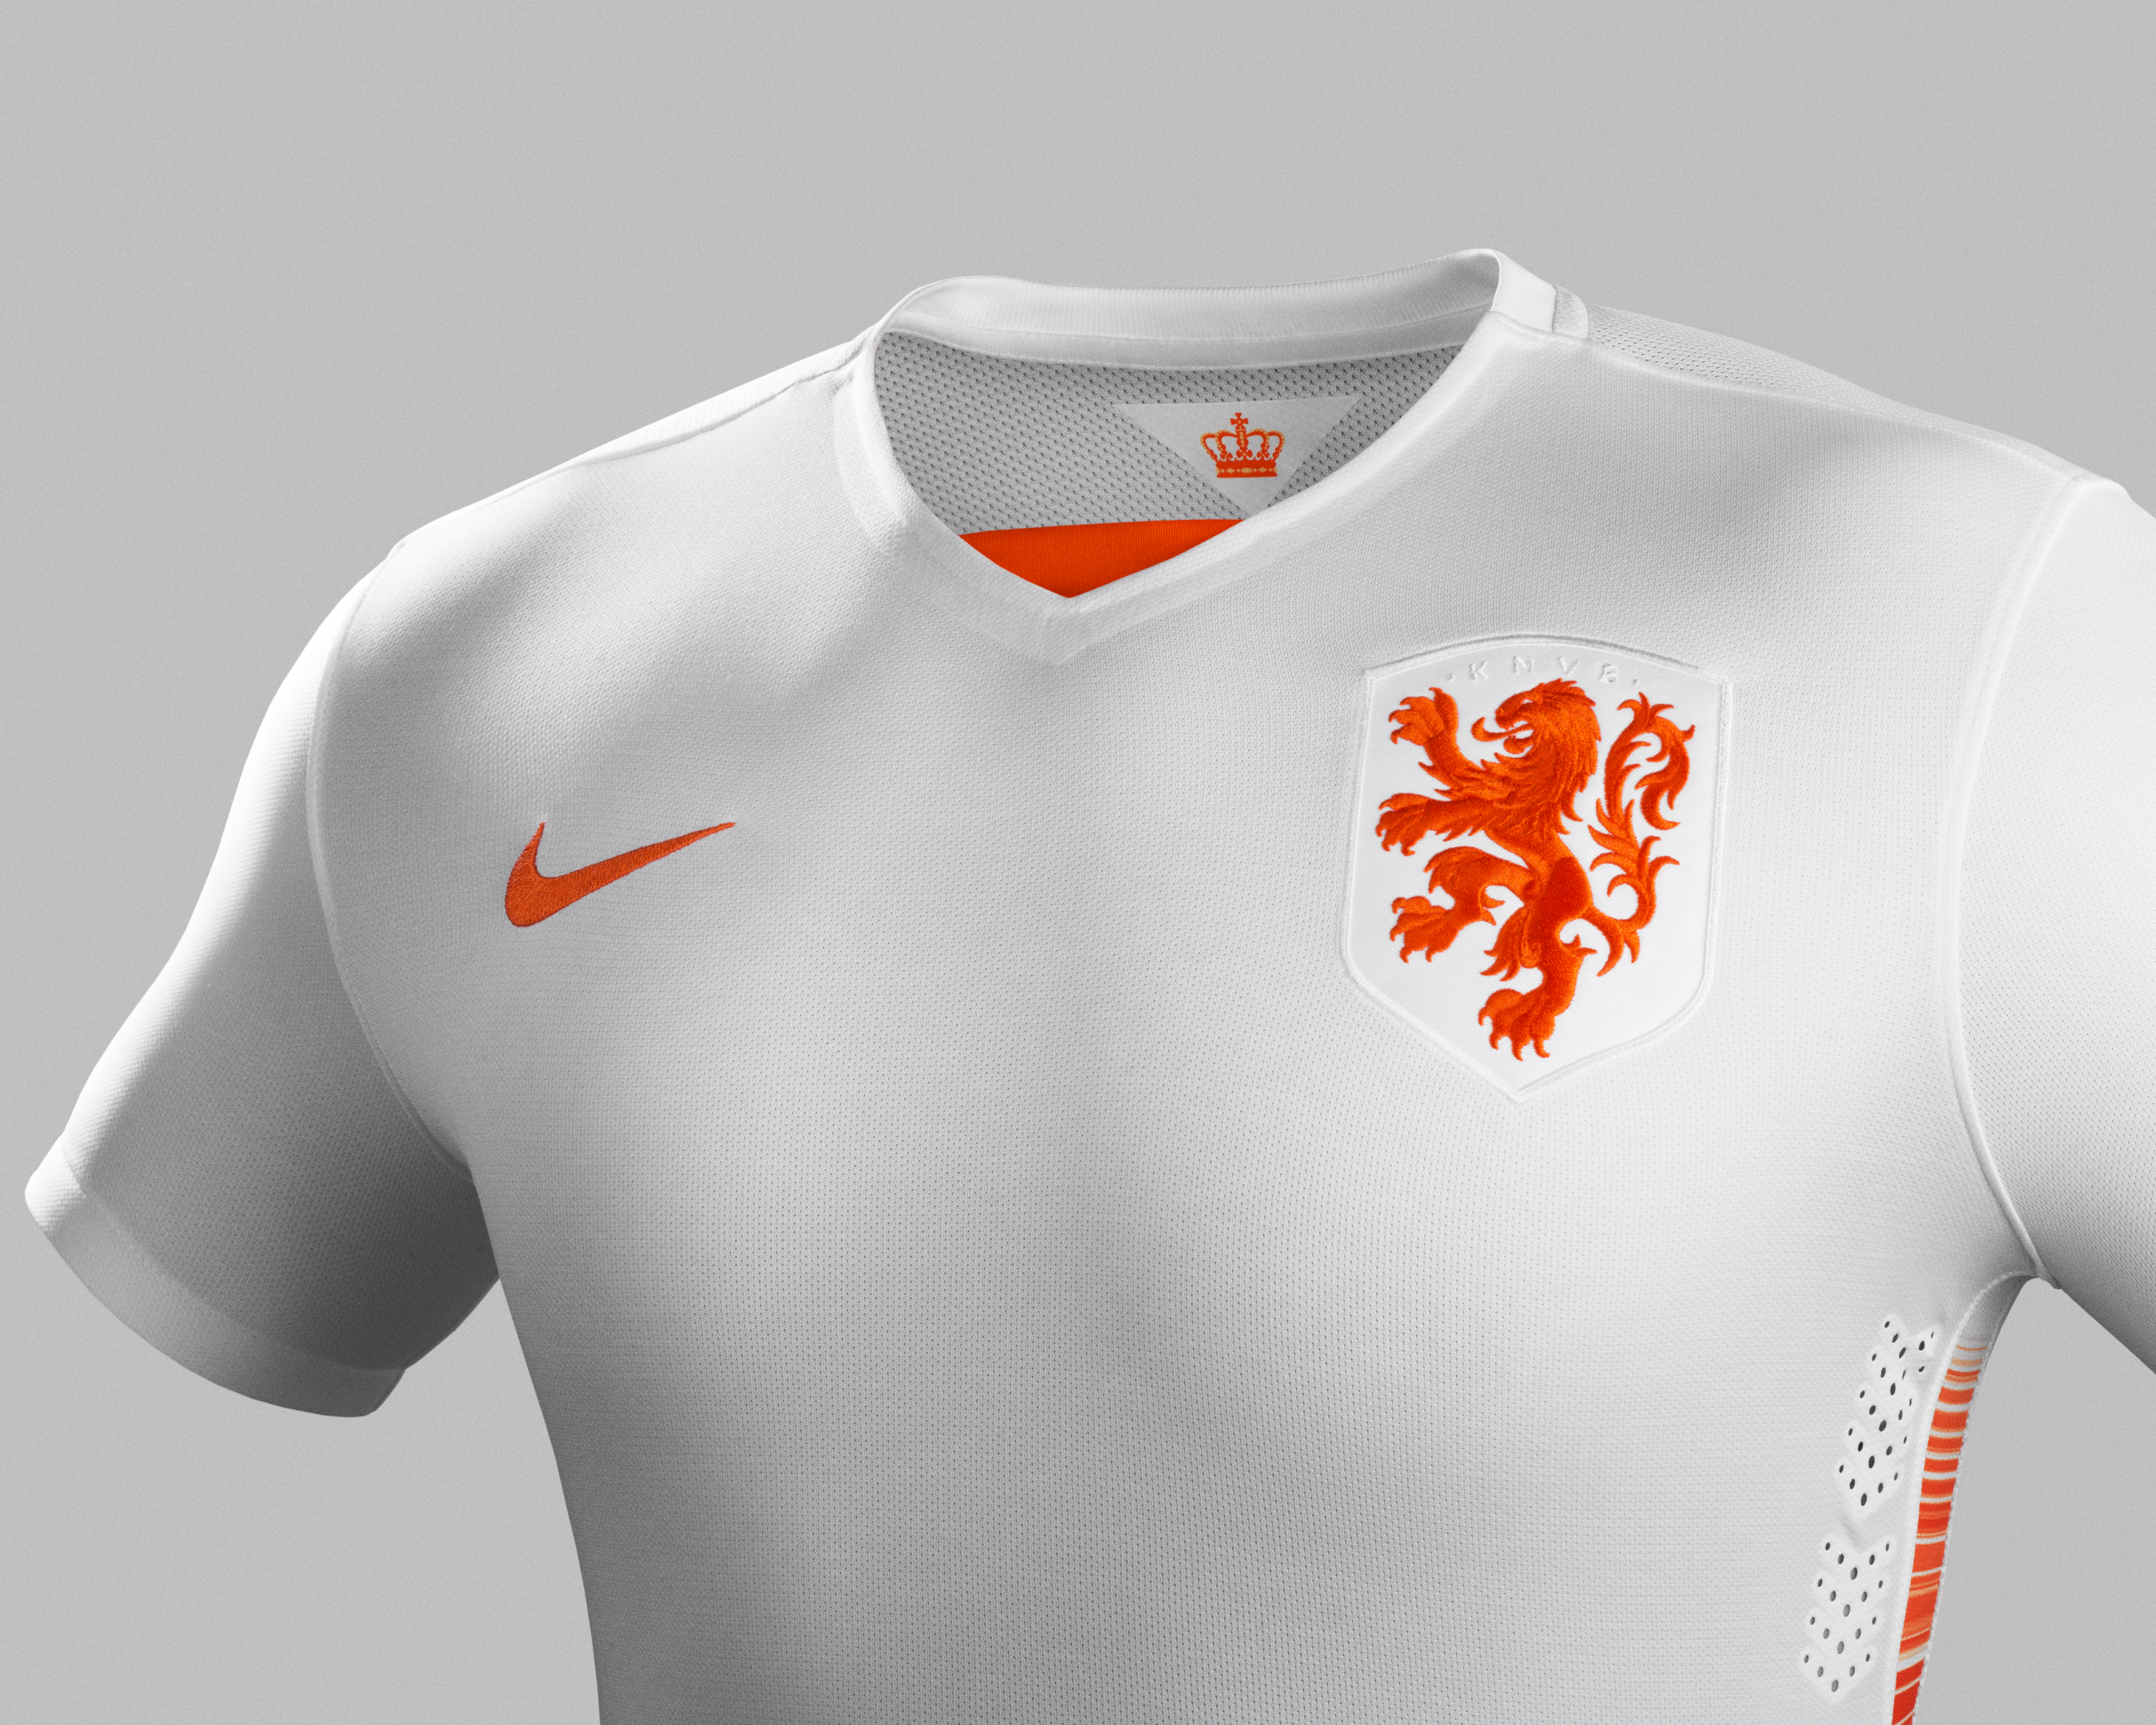 7c35f89a8 The Netherlands and Nike Celebrate National Football Team s Style